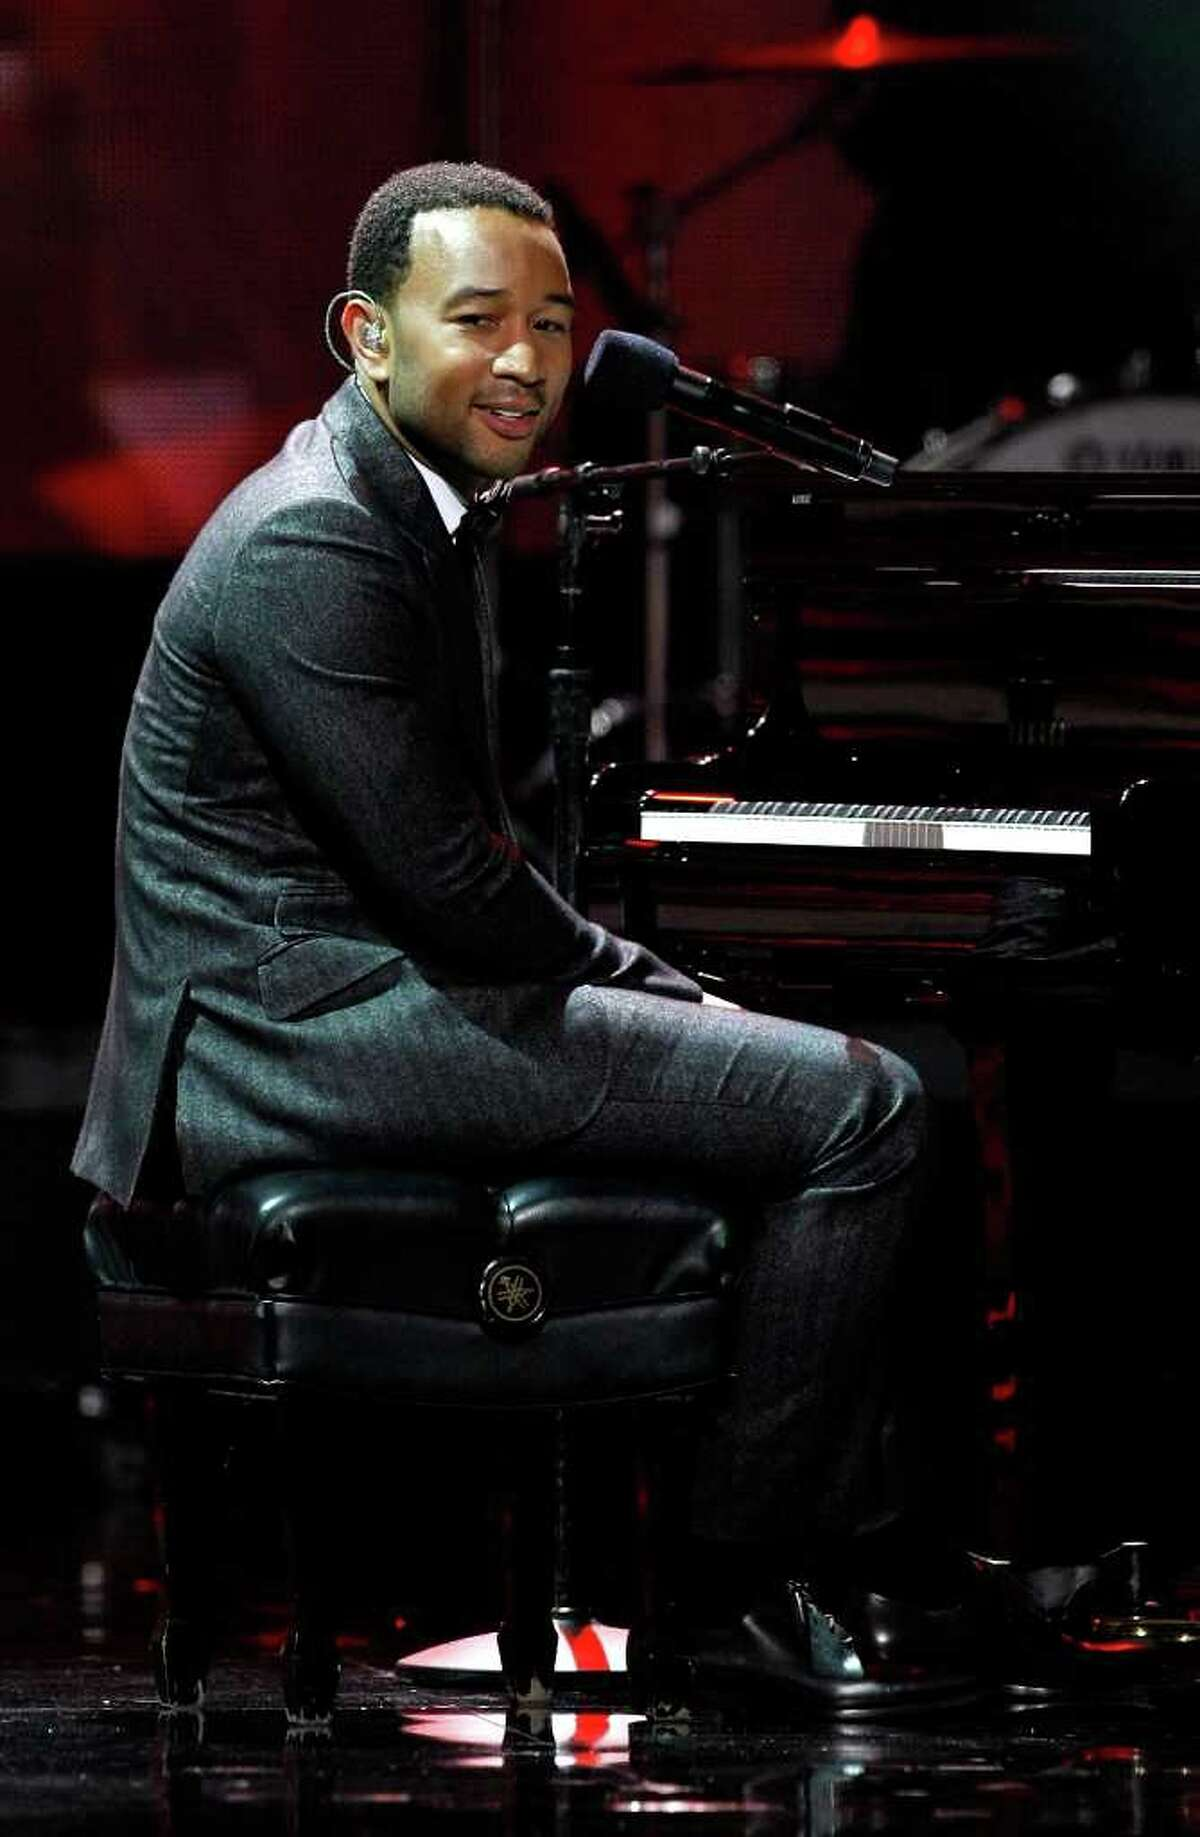 LAS VEGAS - AUGUST 23: Recording artist John Legend performs at the 2010 Miss Universe Pageant at the Mandalay Bay Events Center August 23, 2010 in Las Vegas, Nevada. (Photo by Ethan Miller/Getty Images)